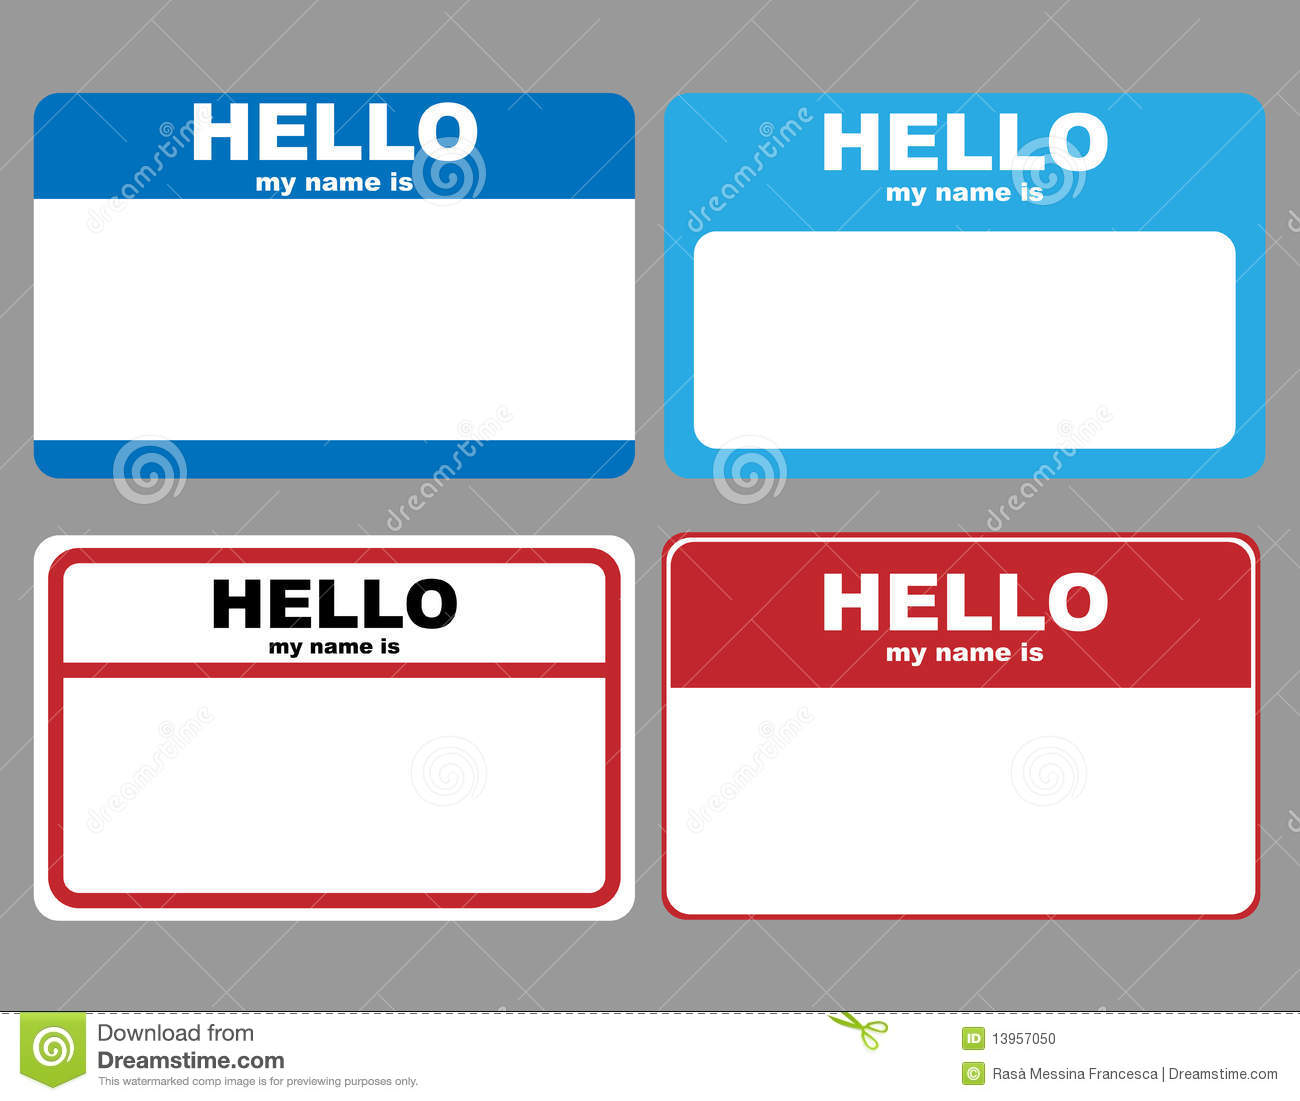 Hello name tags stock vector. Illustration of colorful